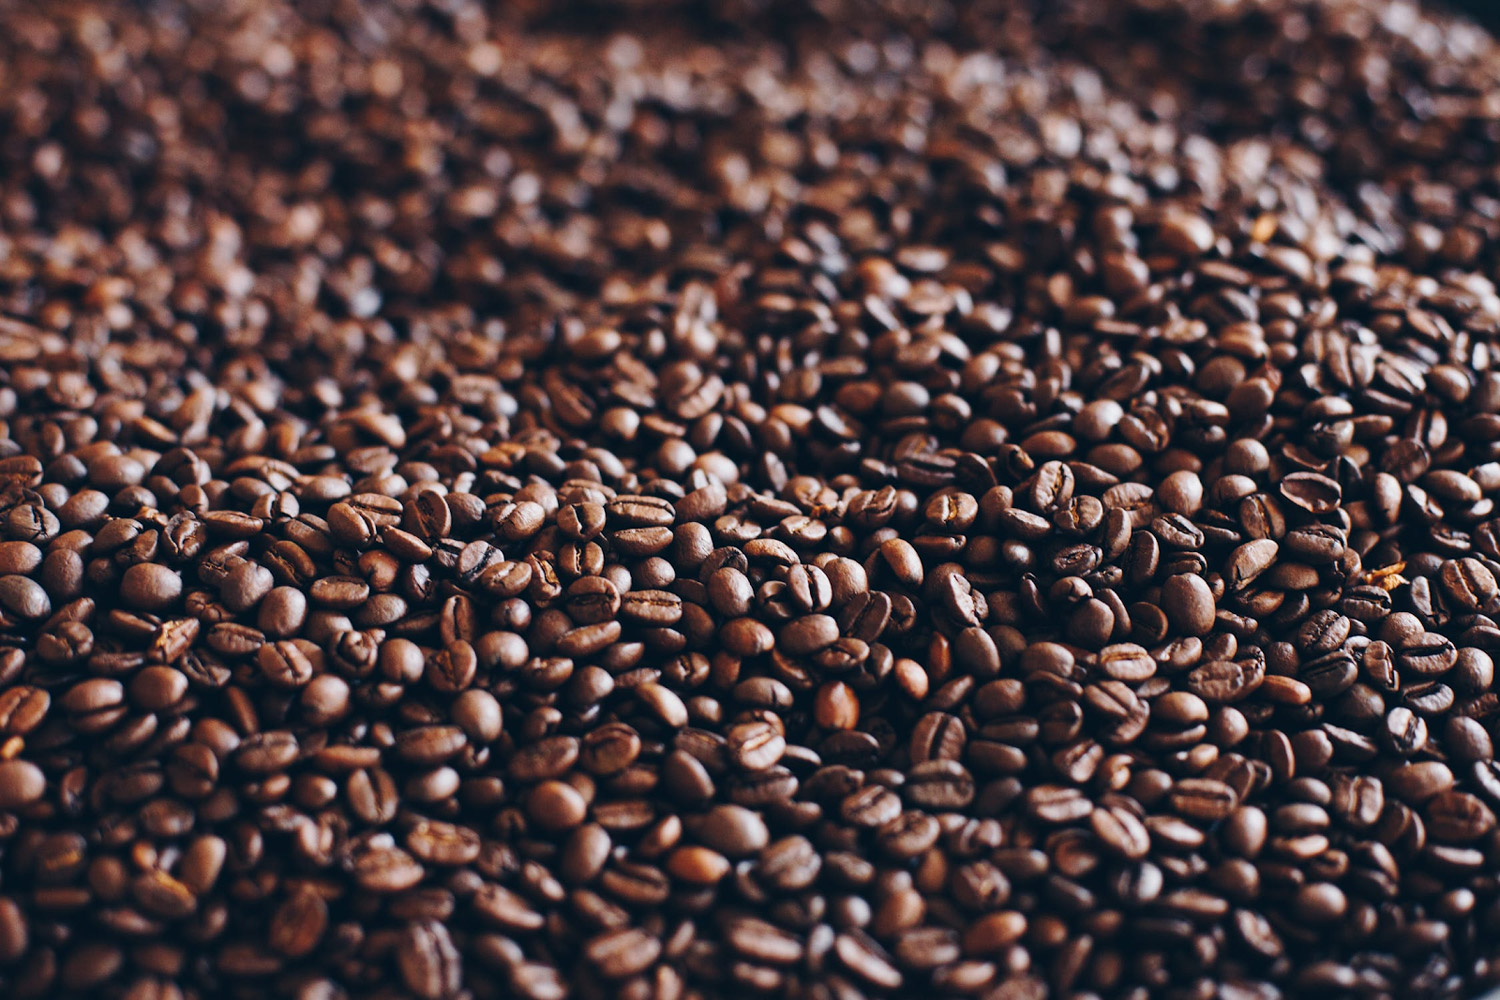 a photo of roasted coffee beans